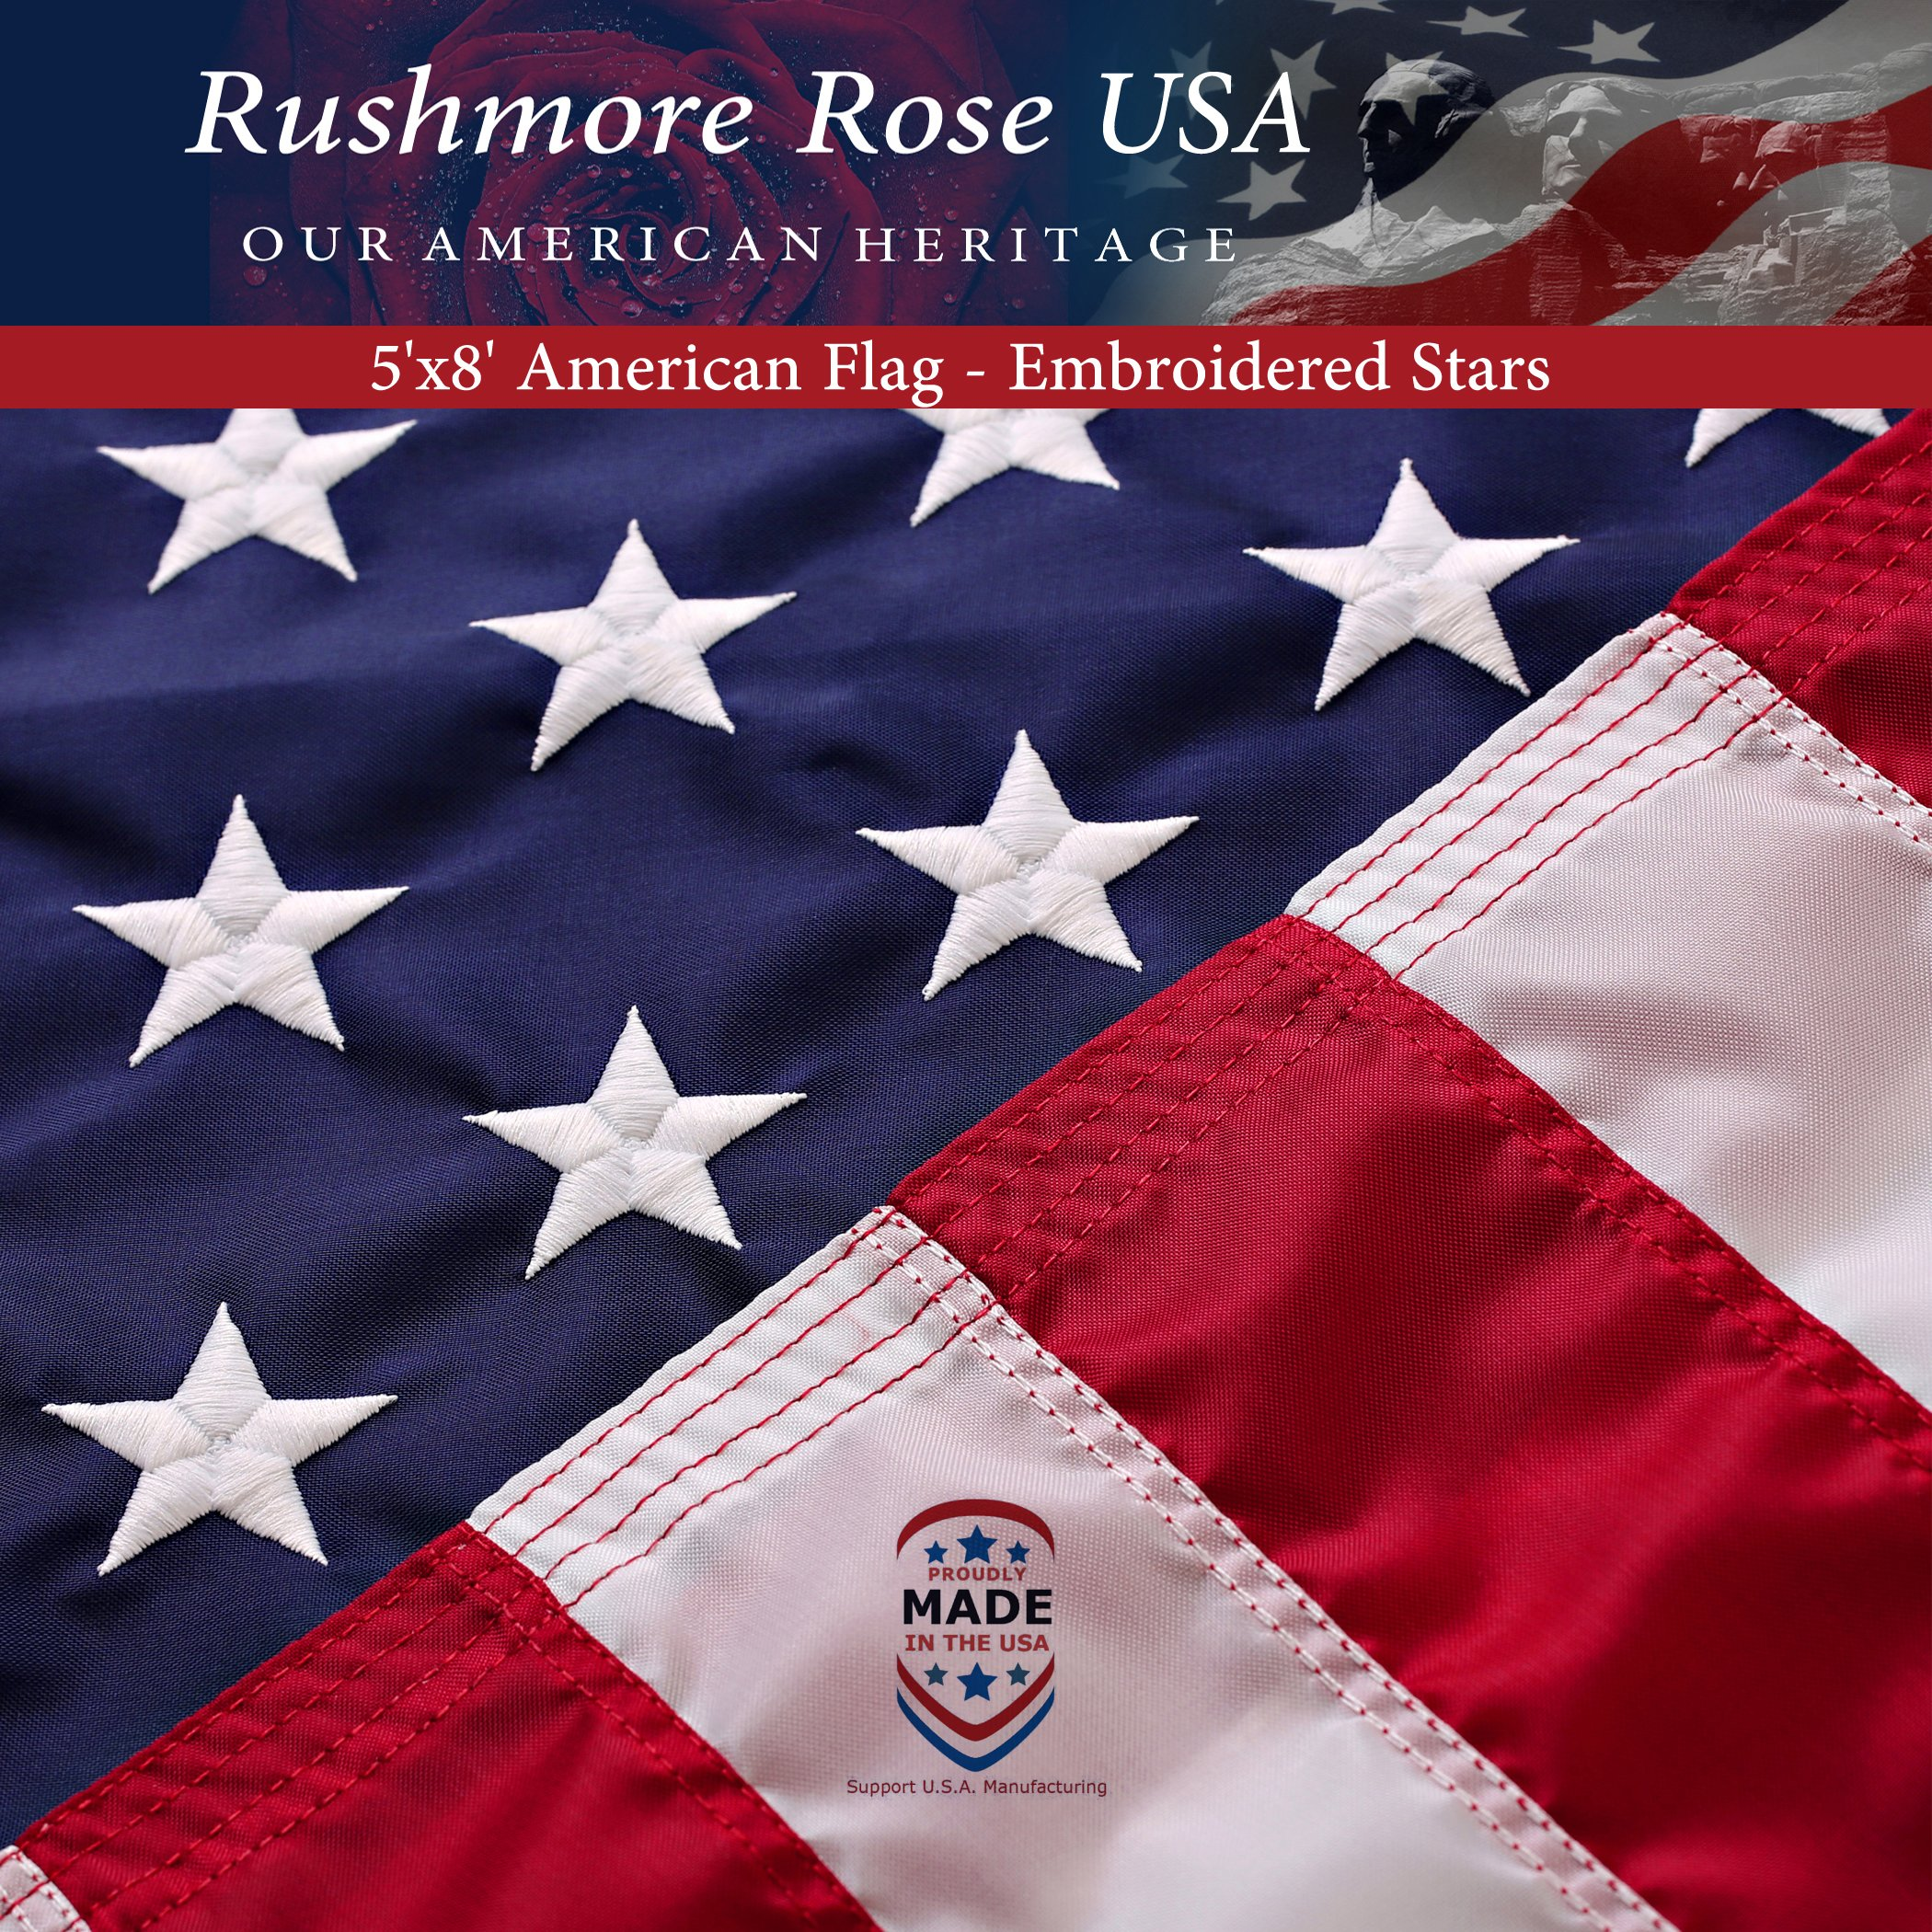 US Flag 5x8 ft: 100% Made in USA. Premium Large American Flag 5x8 ft. Embroidered Stars and Stitched Stripes US Banner - Display with Pride